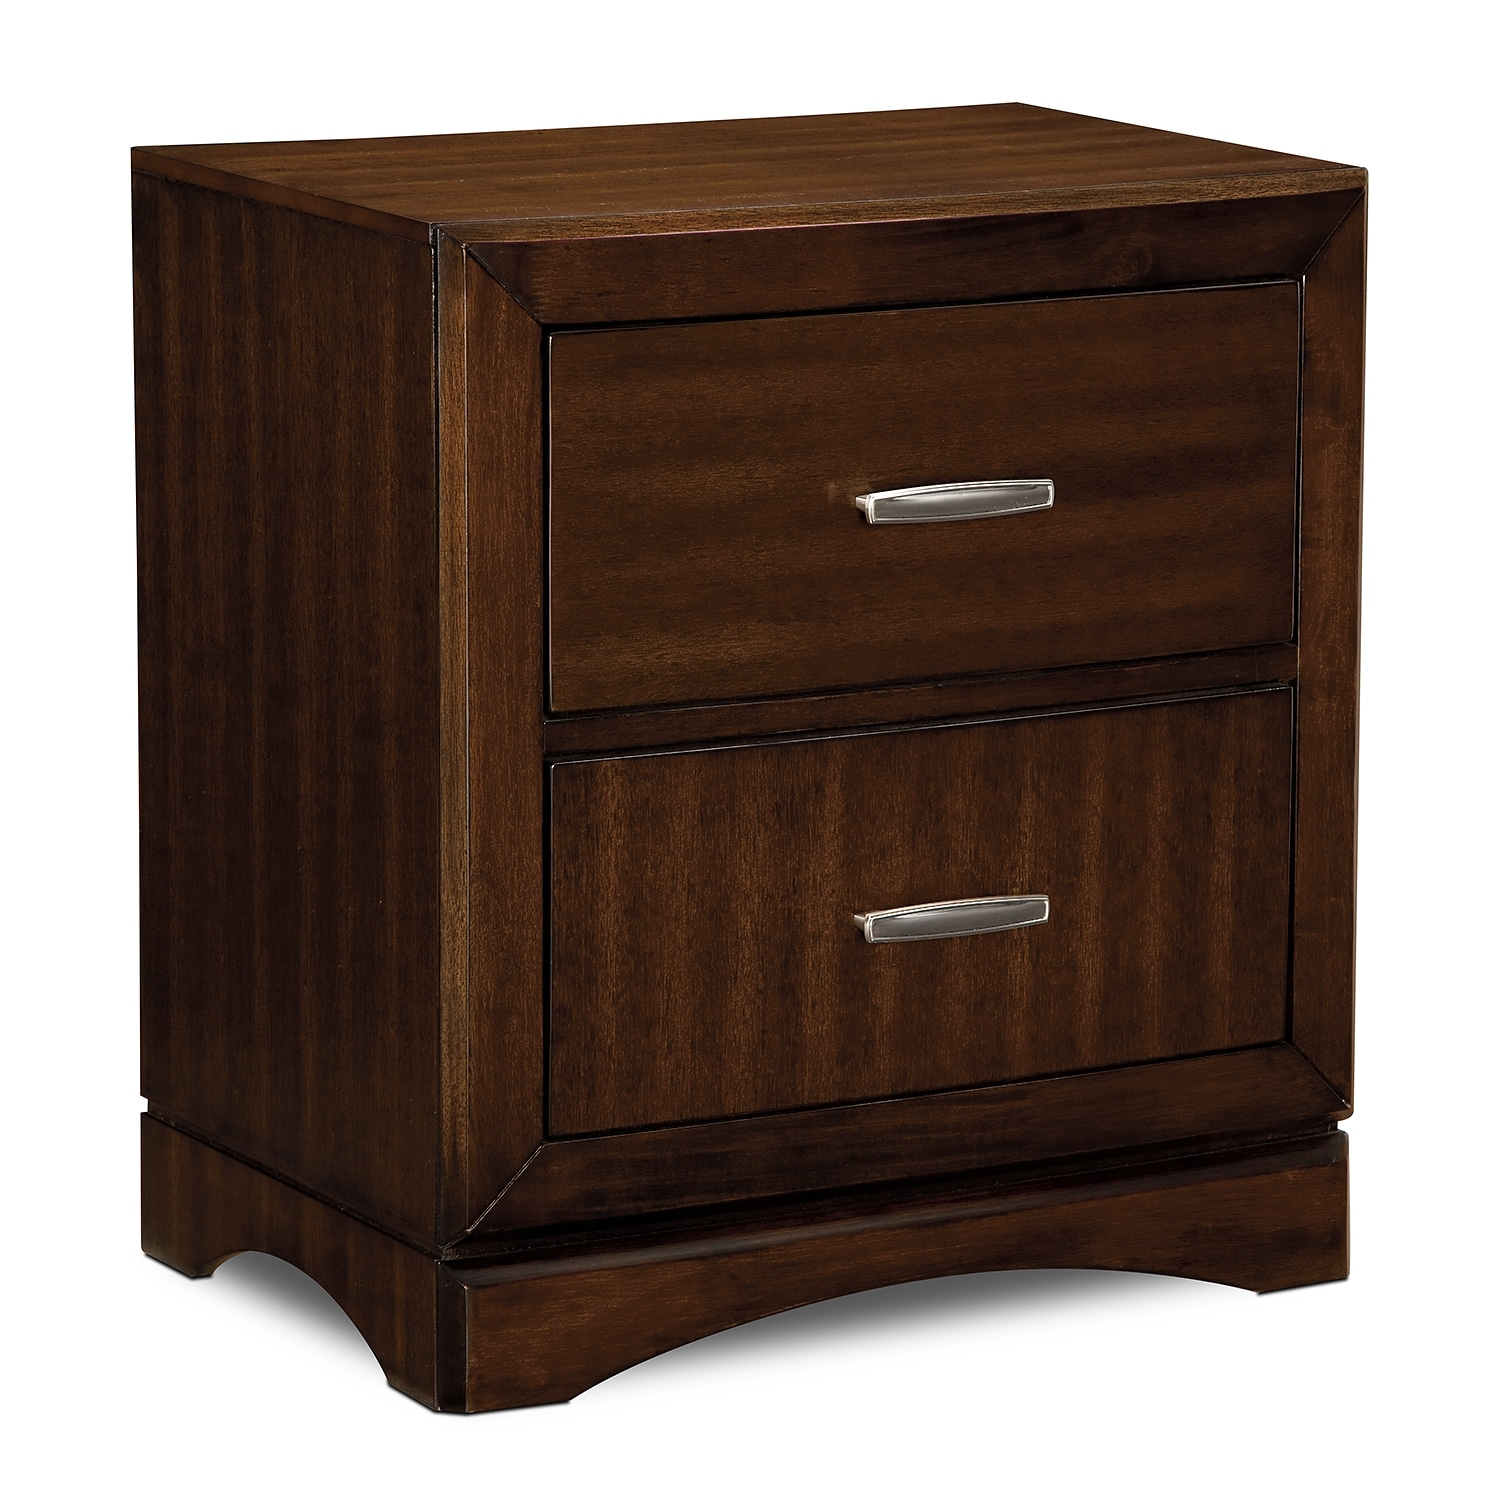 Bedroom Furniture - Toronto Nightstand - Pecan